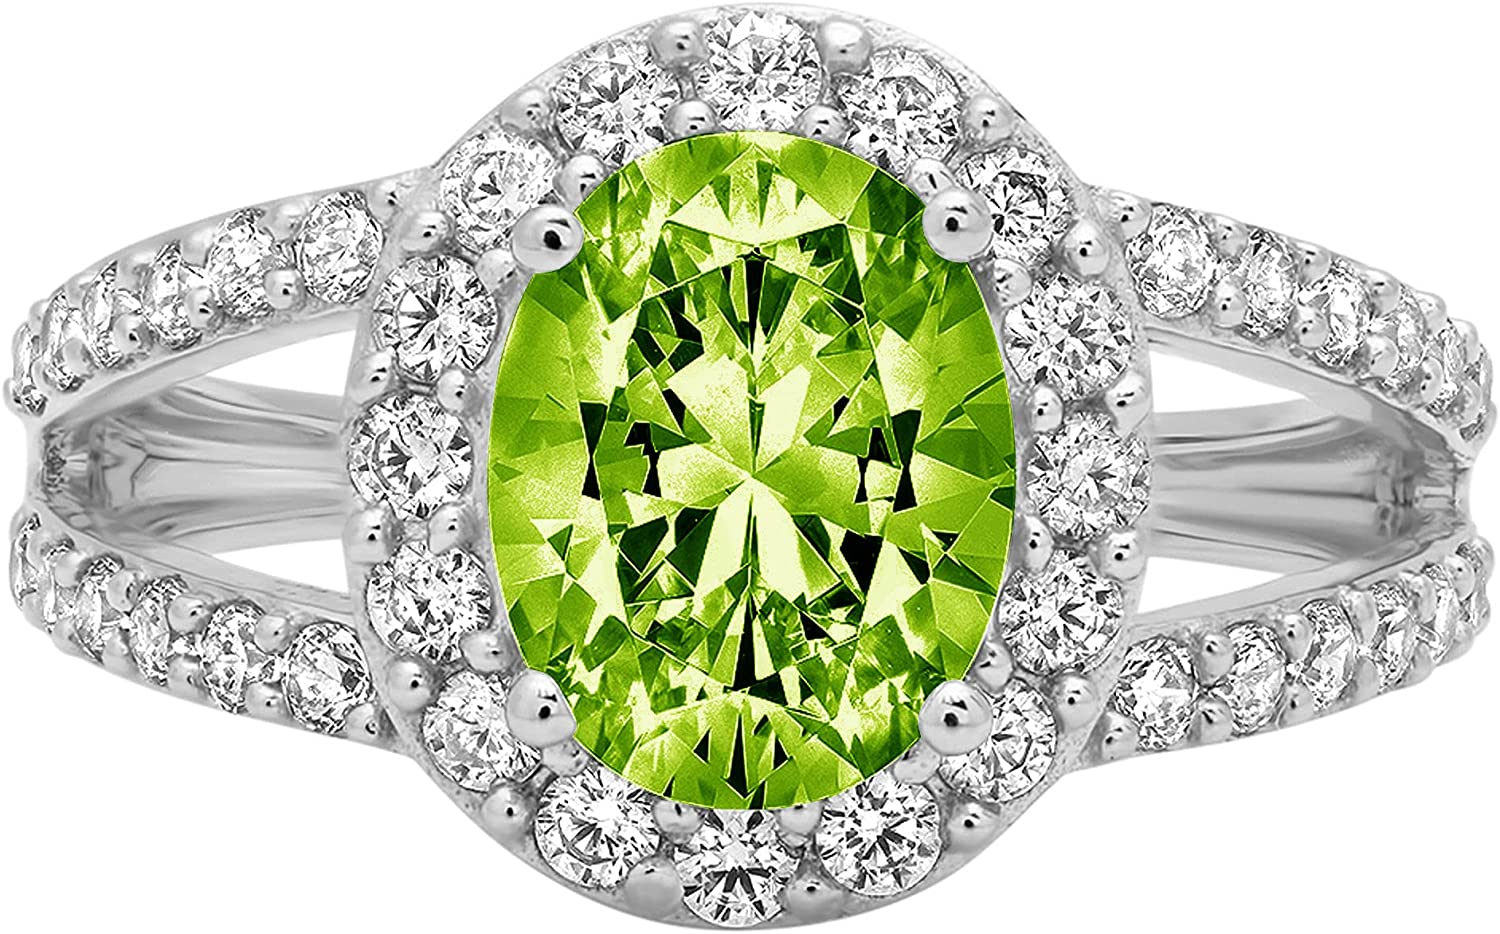 2.24 ct Oval Cut Solitaire Accent Halo split shank Genuine Flawless Natural Green Peridot Gemstone Engagement Promise Statement Anniversary Bridal Wedding Ring Solid 18K White Gold